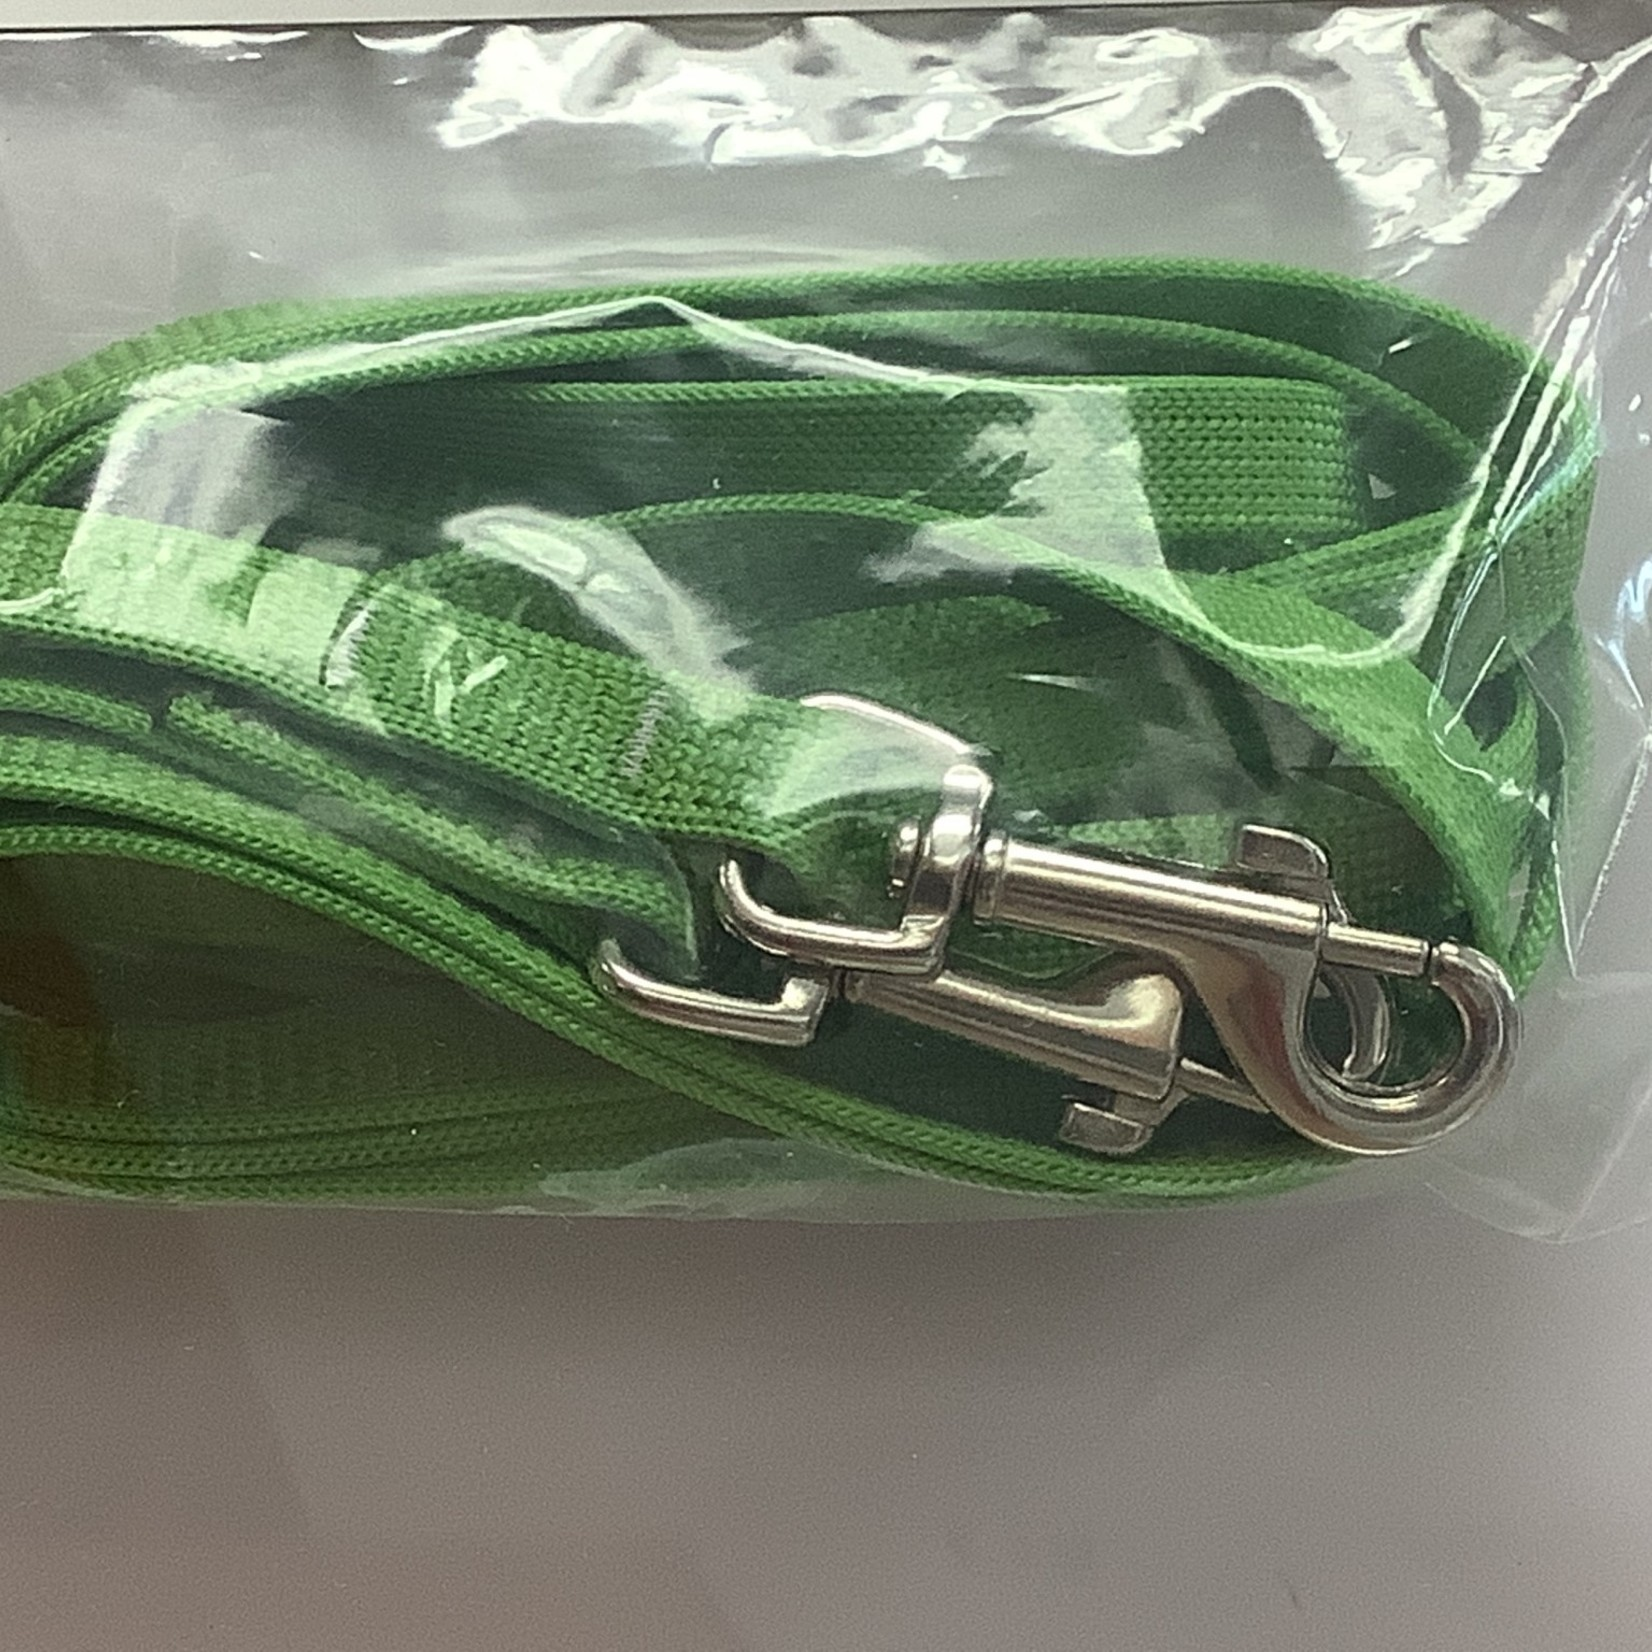 Hunter Brand Tie-Out Cord-Nylon-3/8 in x 10 feet-green